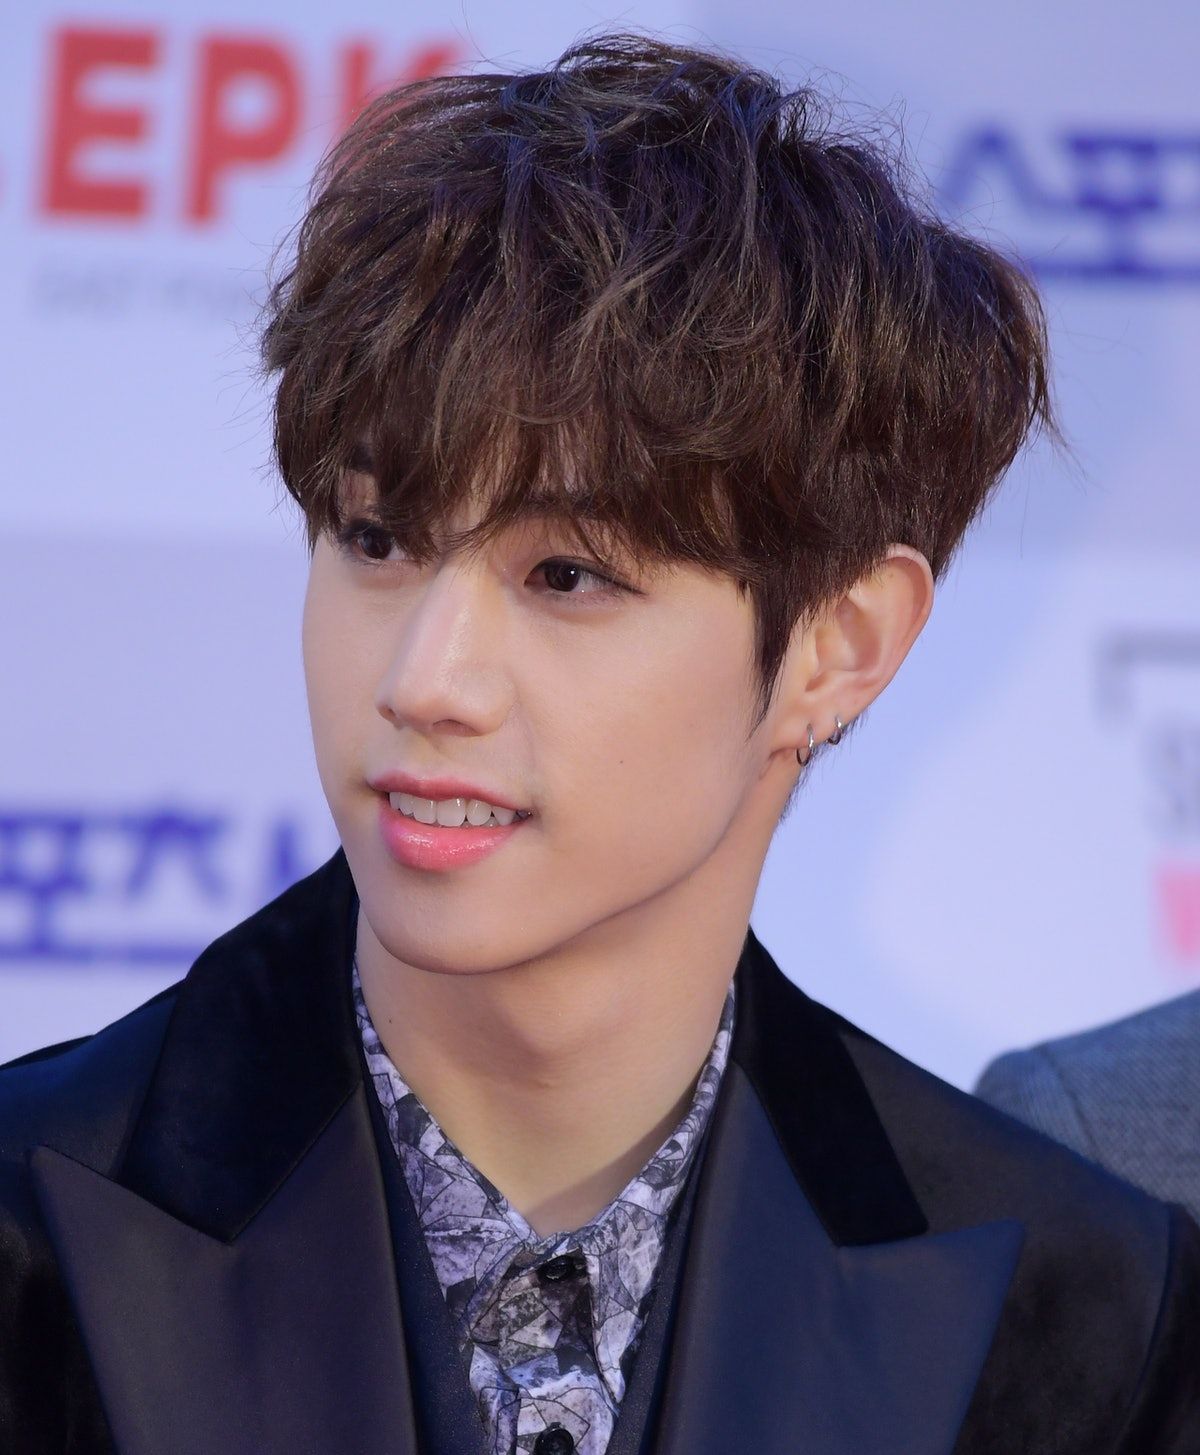 SEOUL, SOUTH KOREA - JANUARY 19: Mark of GOT7 attends 26th High1 Seoul Music Awards at Jamsil Arena on January 19, 2017 in Seoul, South Korea. (Photo by The Chosunilbo JNS/Imazins via Getty Images)